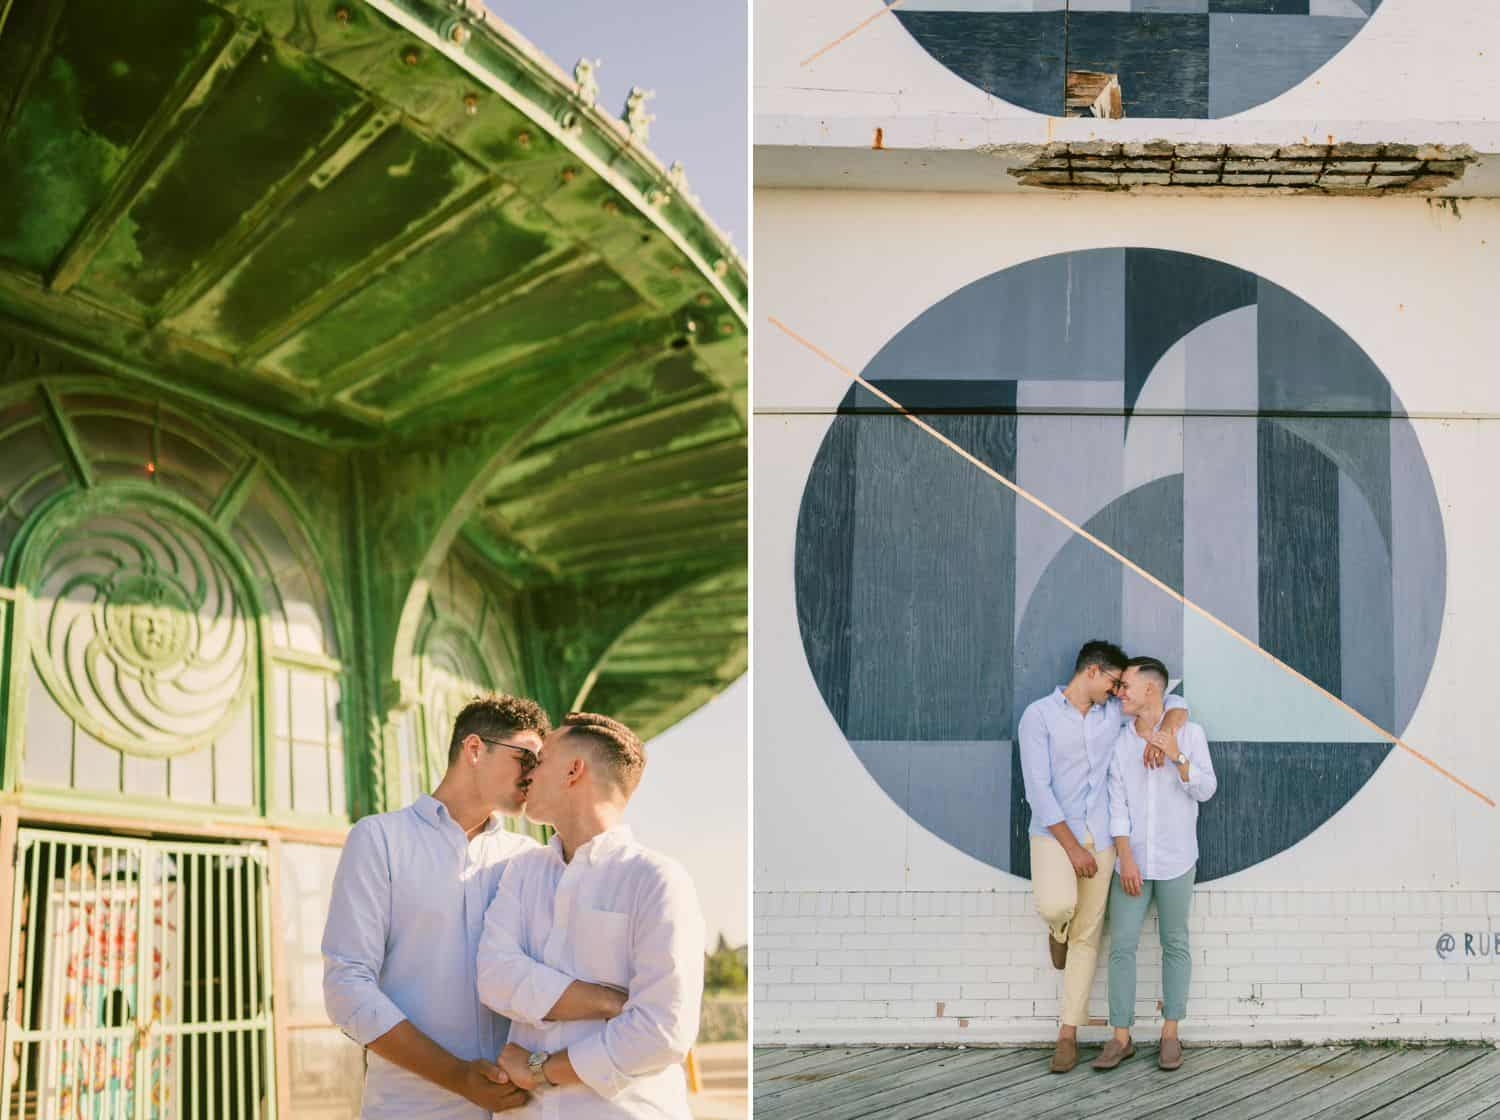 Photos of a couple posing kissing each other and holding hands